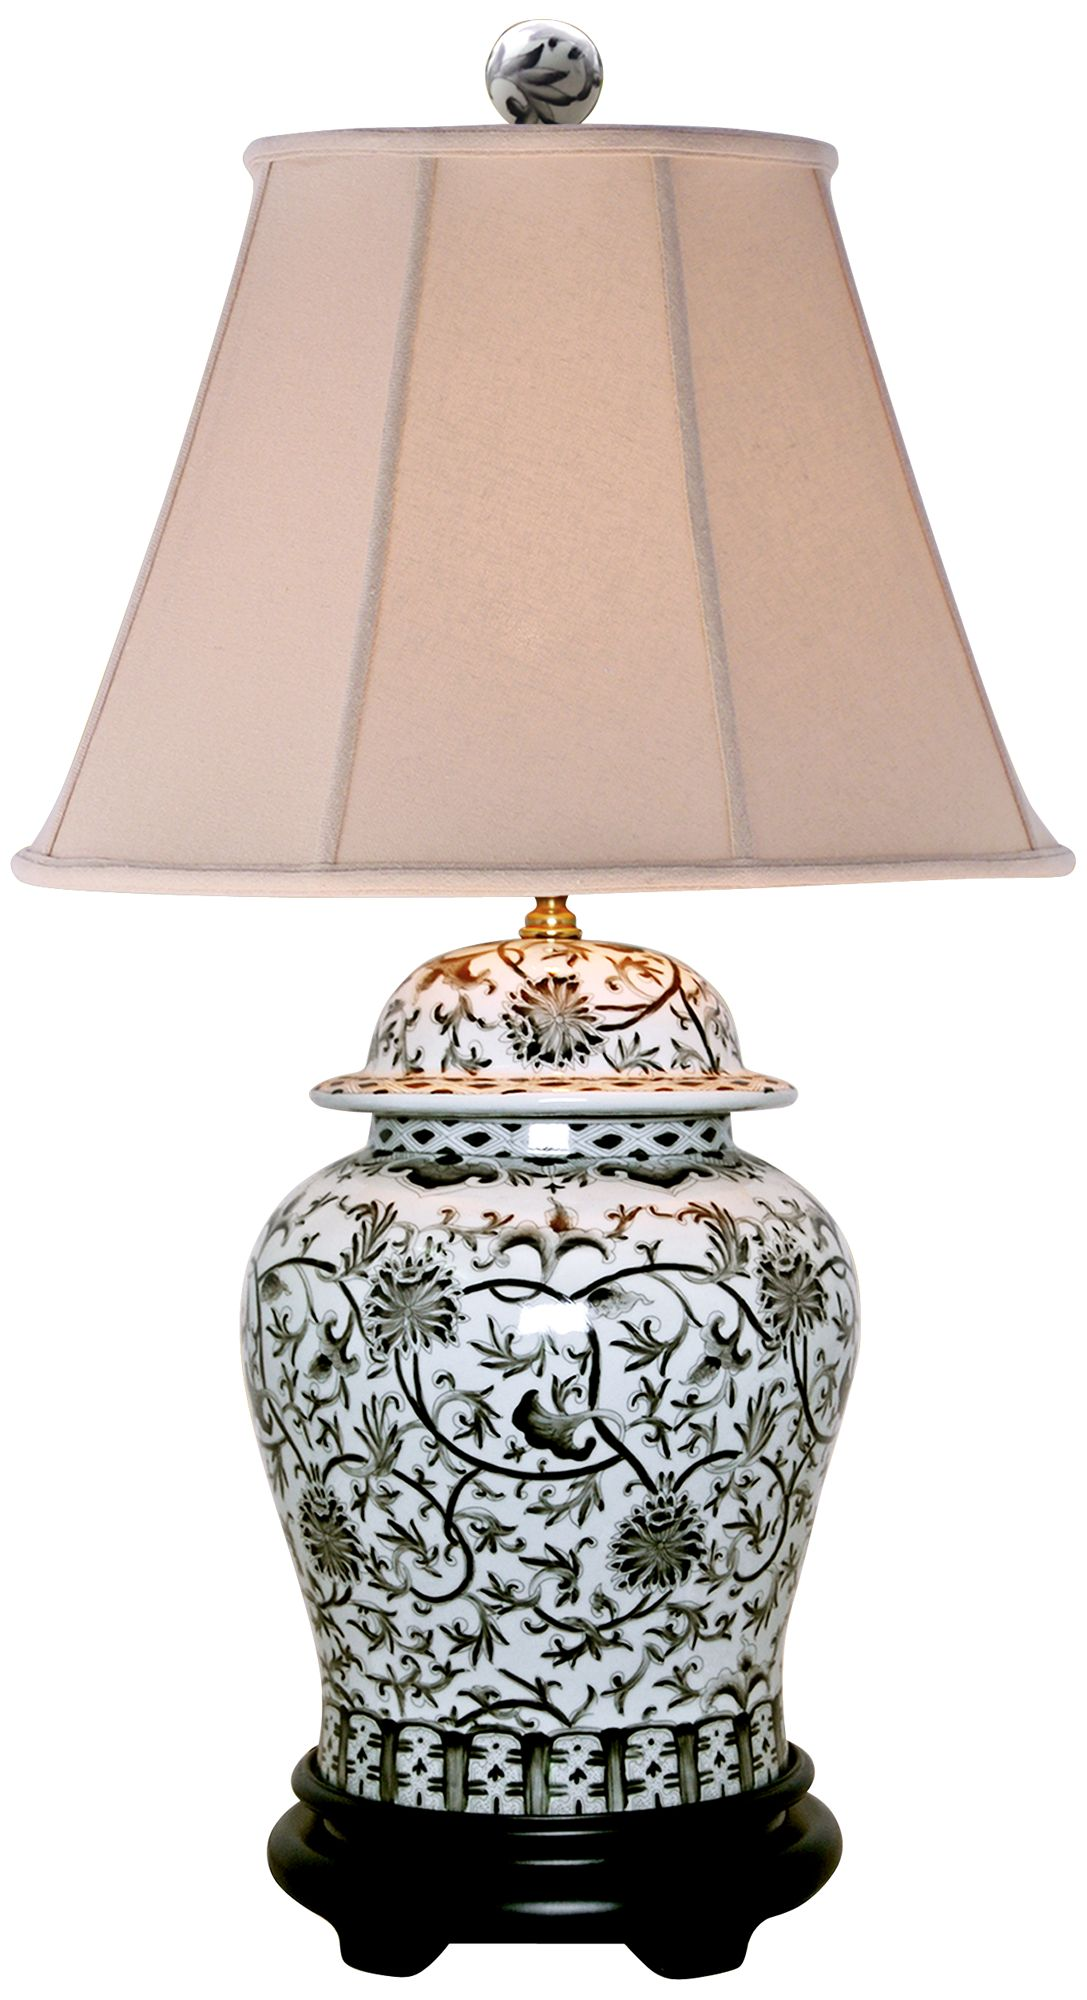 Black And White Floral Temple Jar Table Lamp